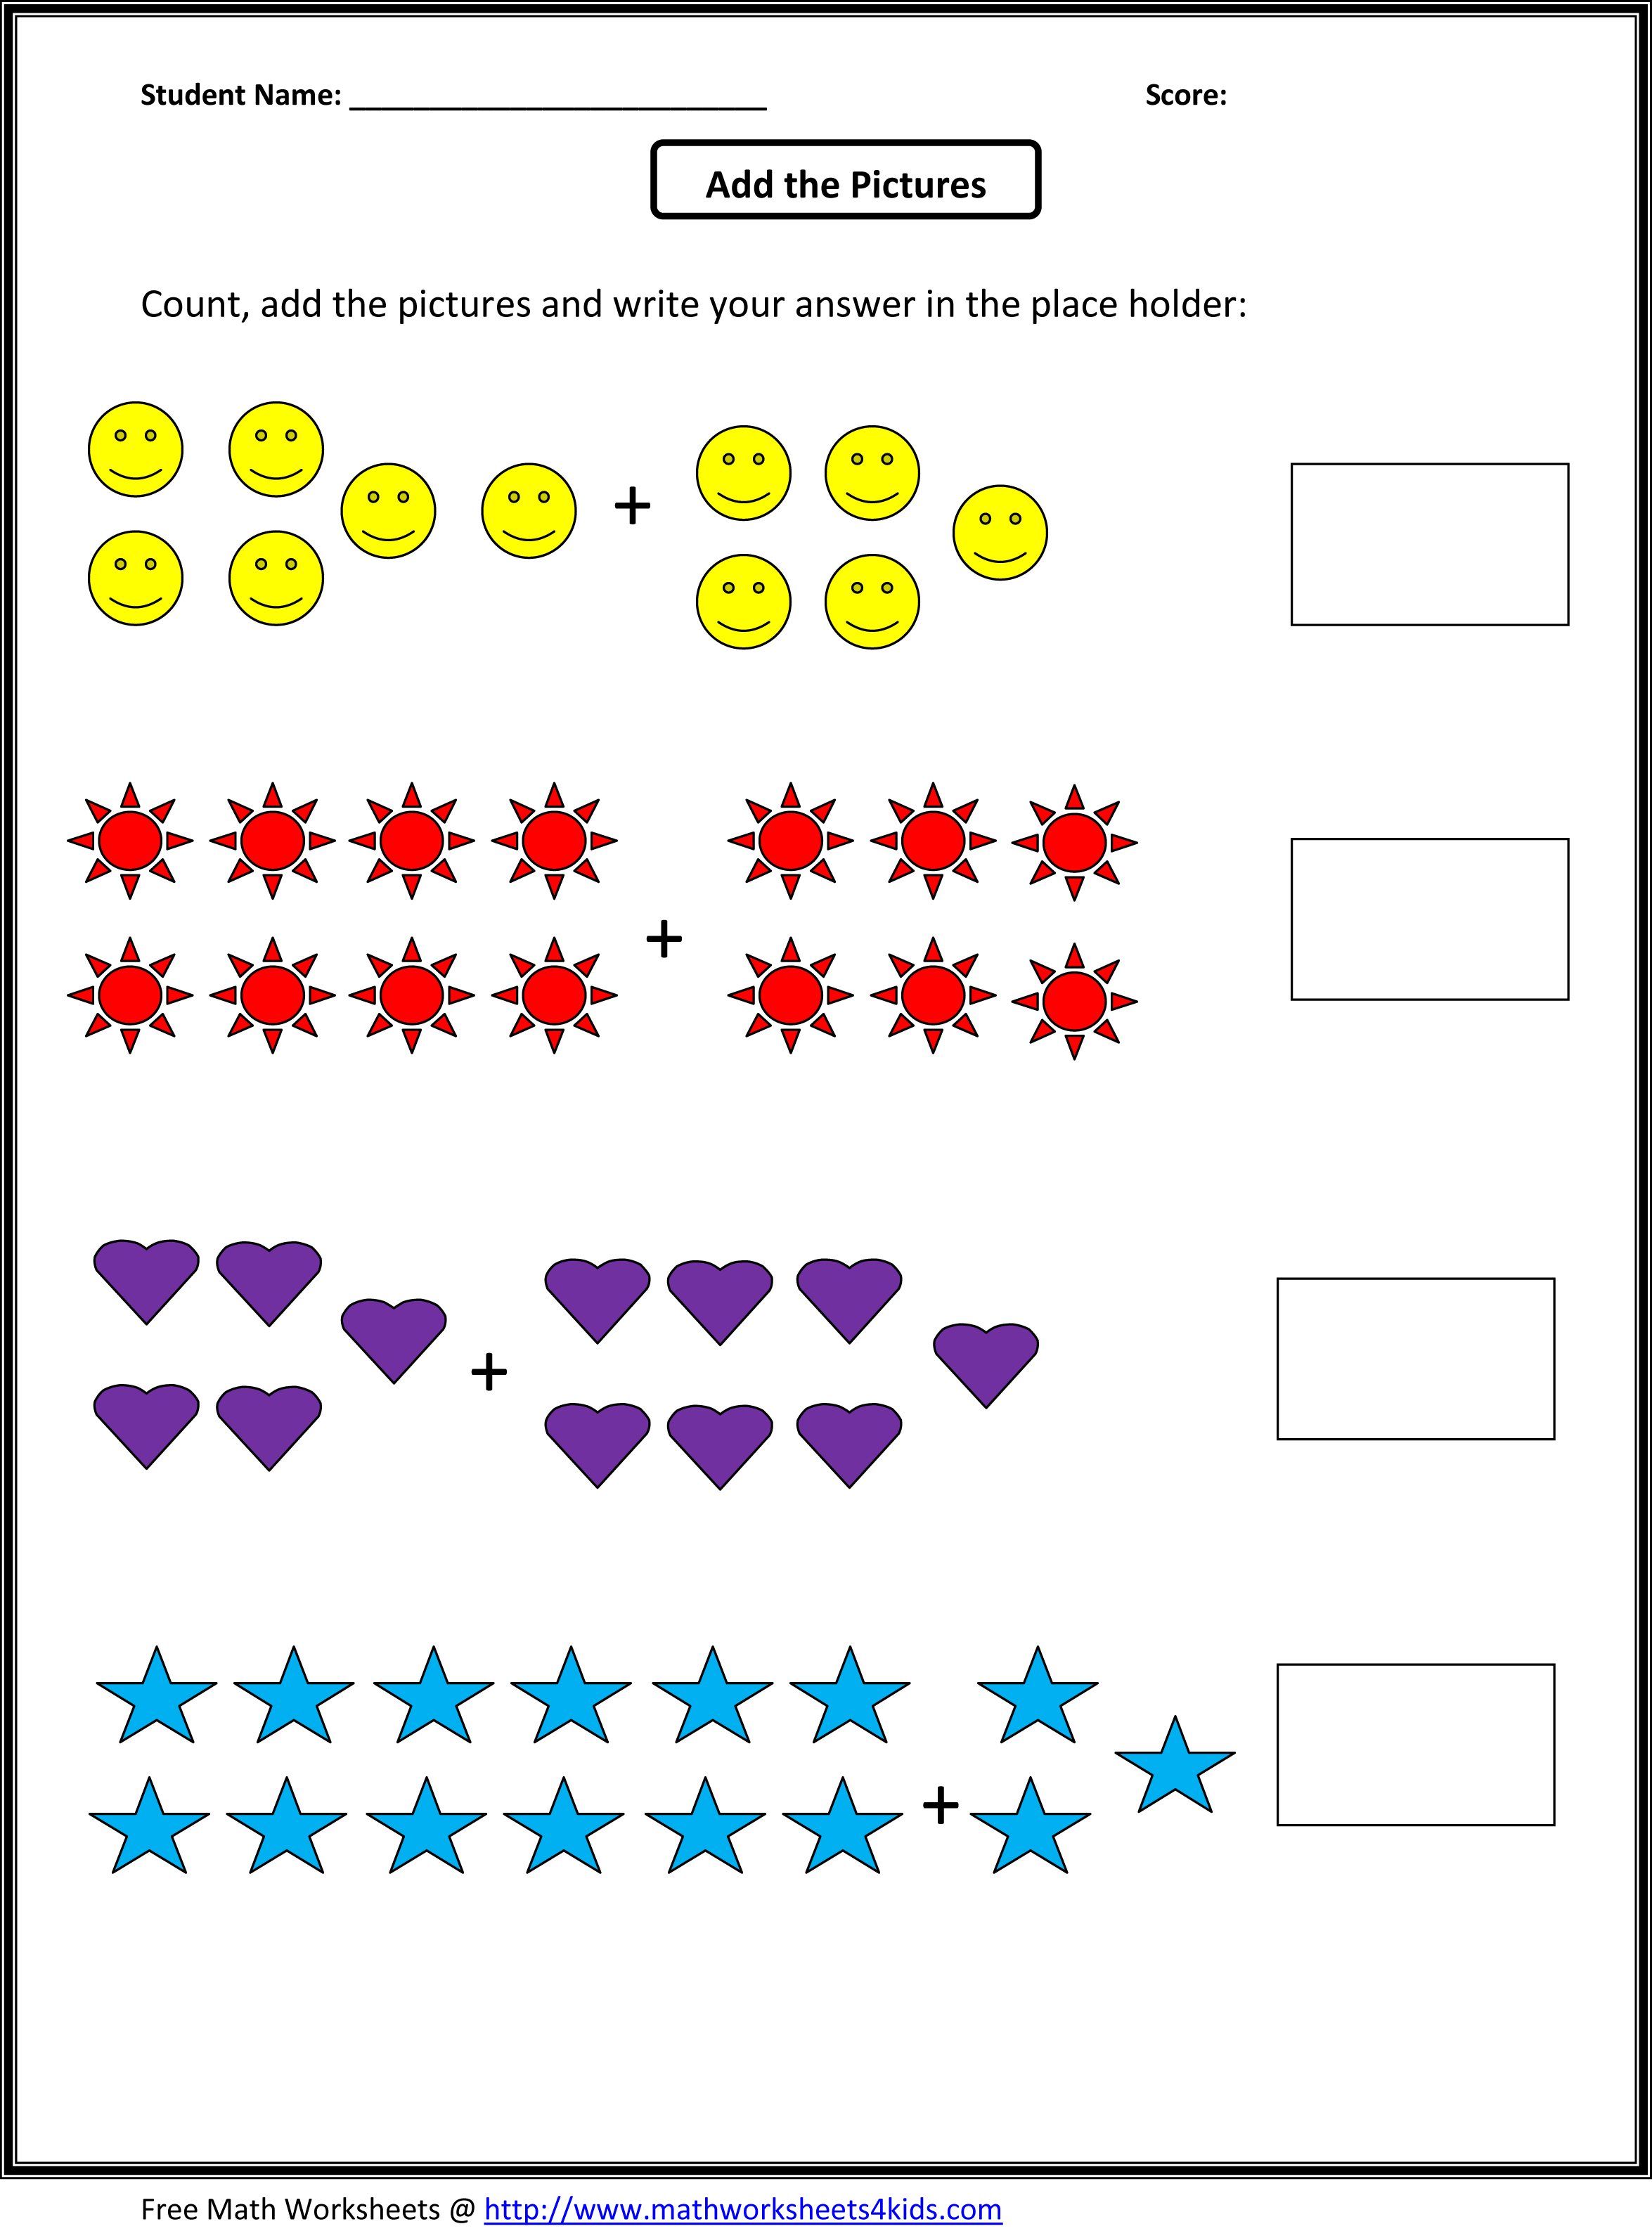 Proatmealus  Sweet Grade  Maths Worksheet  Reocurent With Inspiring Math Worksheets For St Grade Free  Reocurent With Lovely Free  Digit Addition Worksheets Also Worksheet On Polynomials In Addition Number Matching Worksheets  And Mental Math Practice Worksheets As Well As Th Grade Adjective Worksheets Additionally Free Printable Math Worksheets For Middle School From Reocurentcom With Proatmealus  Inspiring Grade  Maths Worksheet  Reocurent With Lovely Math Worksheets For St Grade Free  Reocurent And Sweet Free  Digit Addition Worksheets Also Worksheet On Polynomials In Addition Number Matching Worksheets  From Reocurentcom